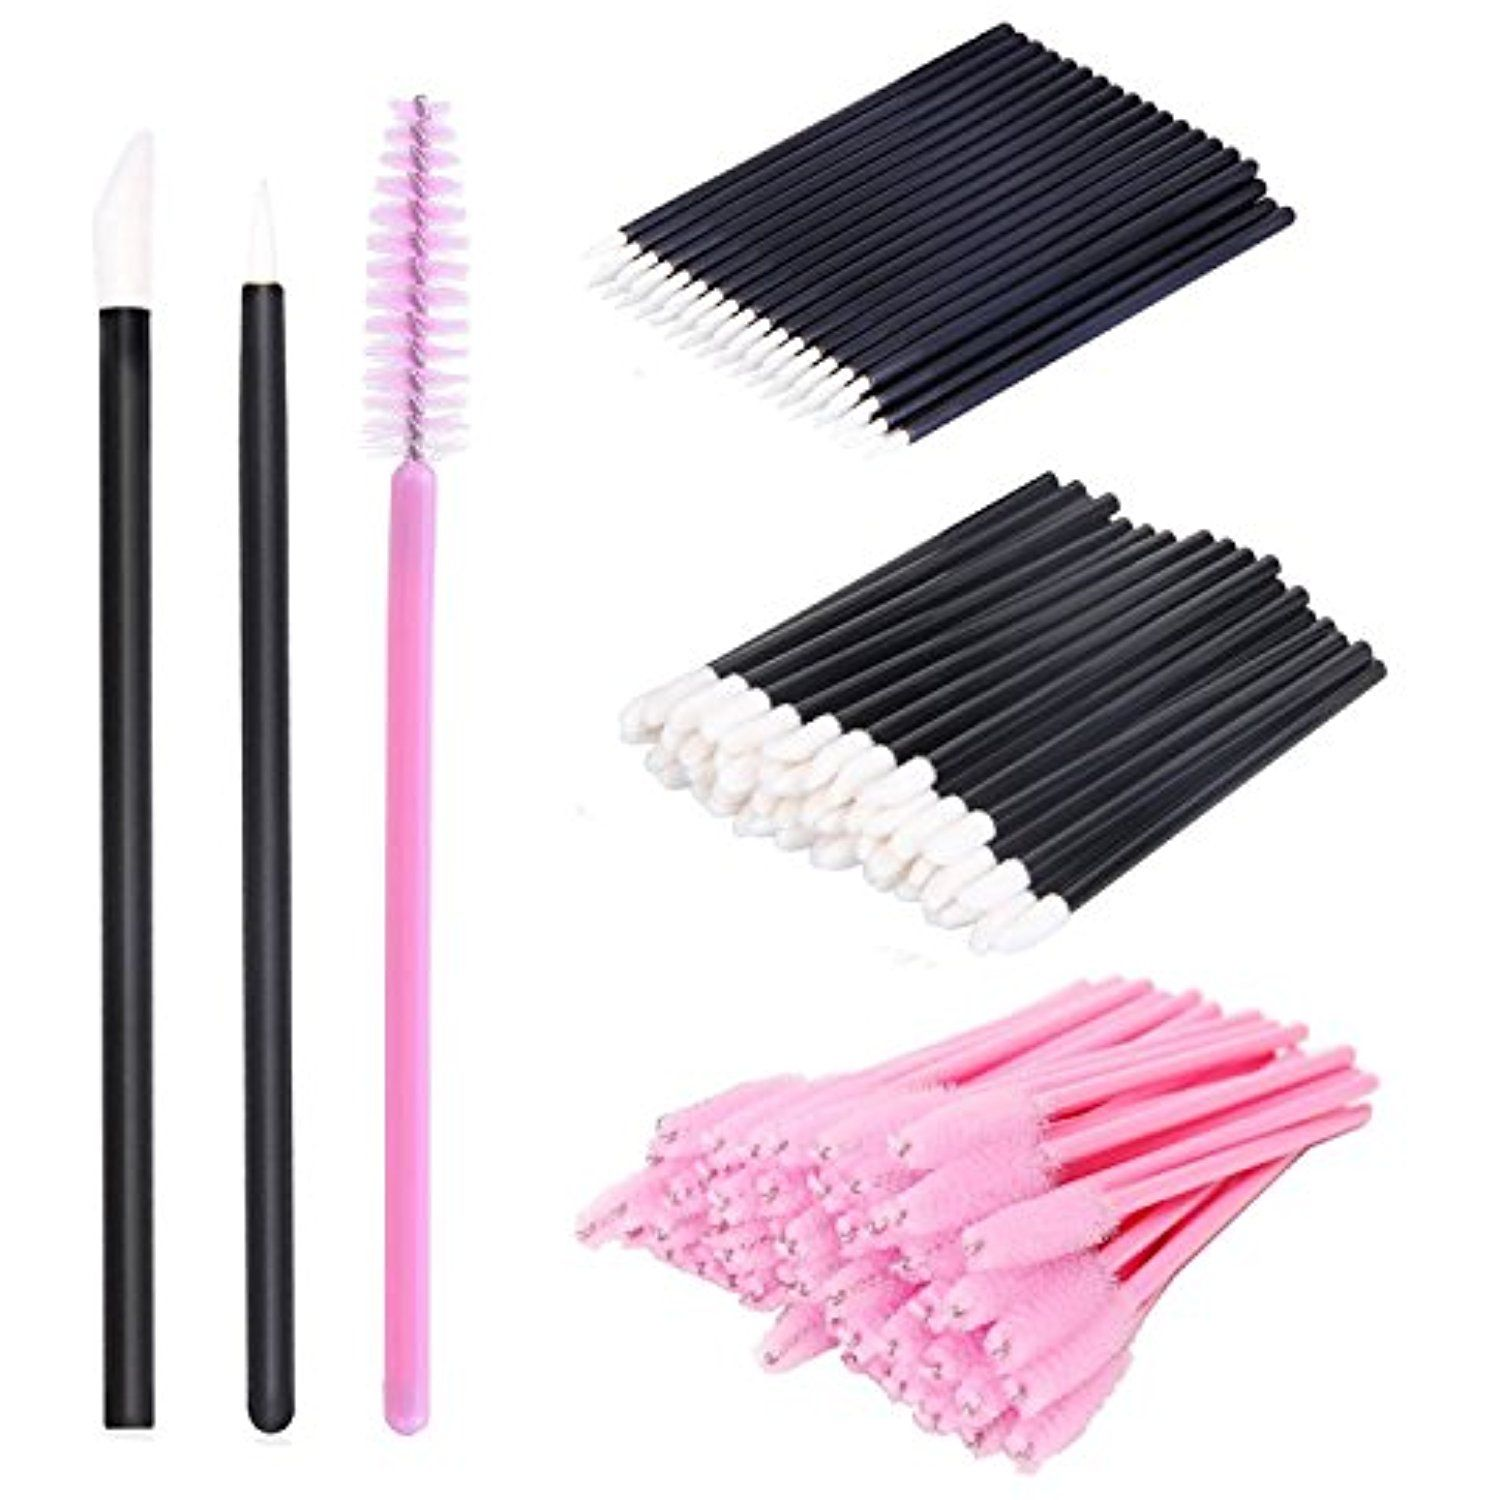 150 Pieces Disposable Makeup Brush Eyelash Mascara Brushes Eyeliner